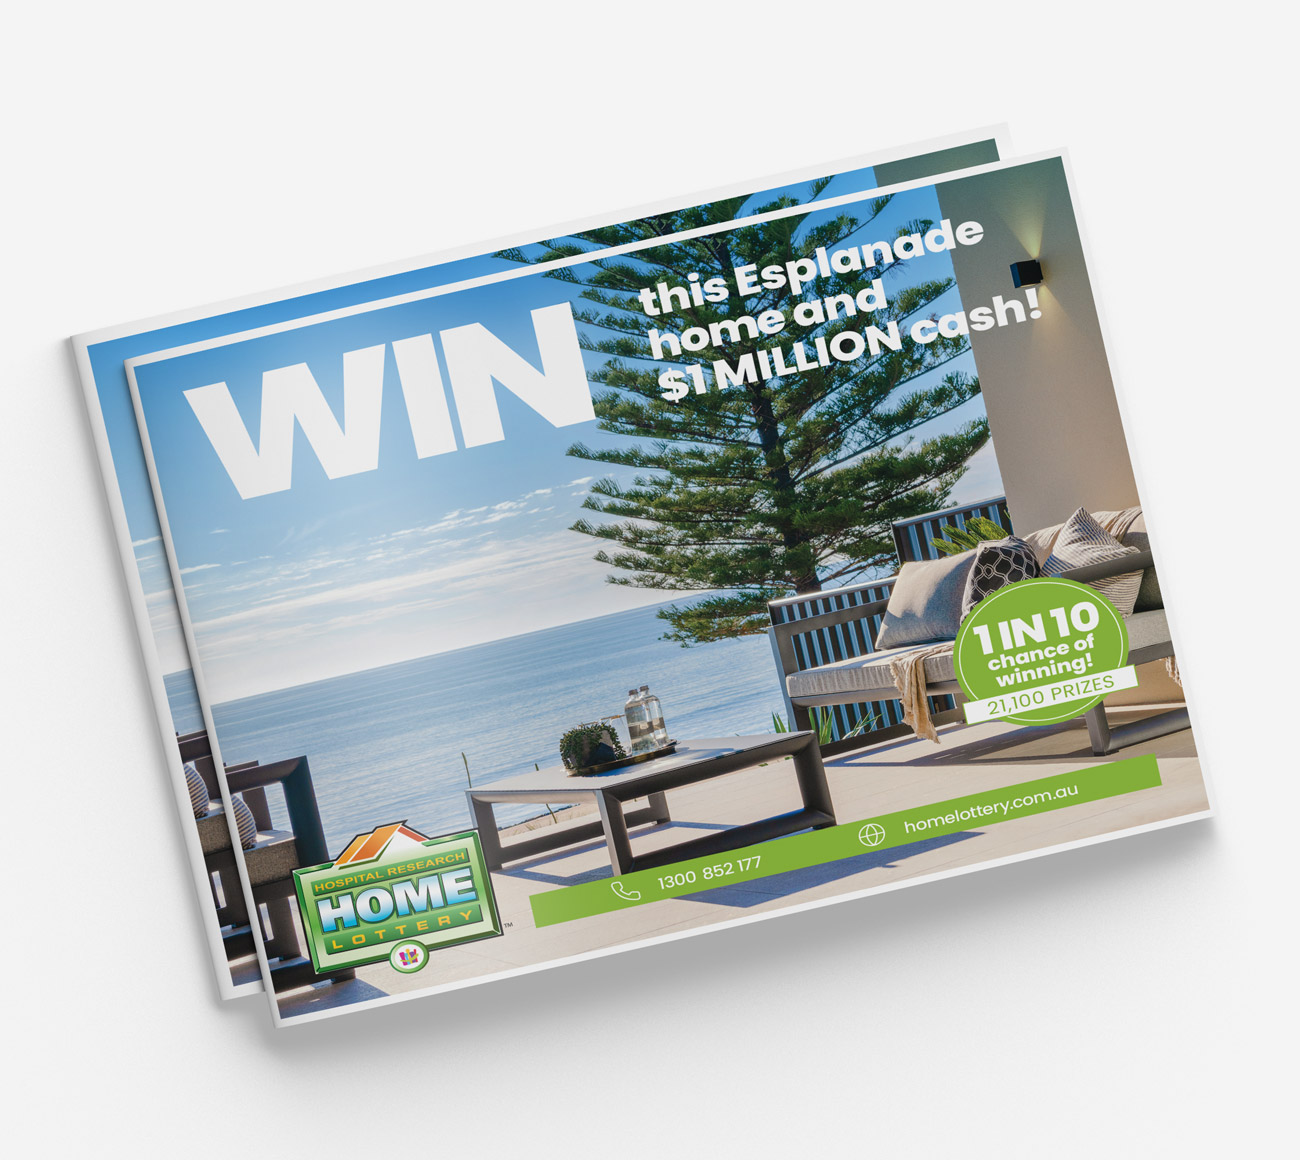 home-lottery-brochure-cover